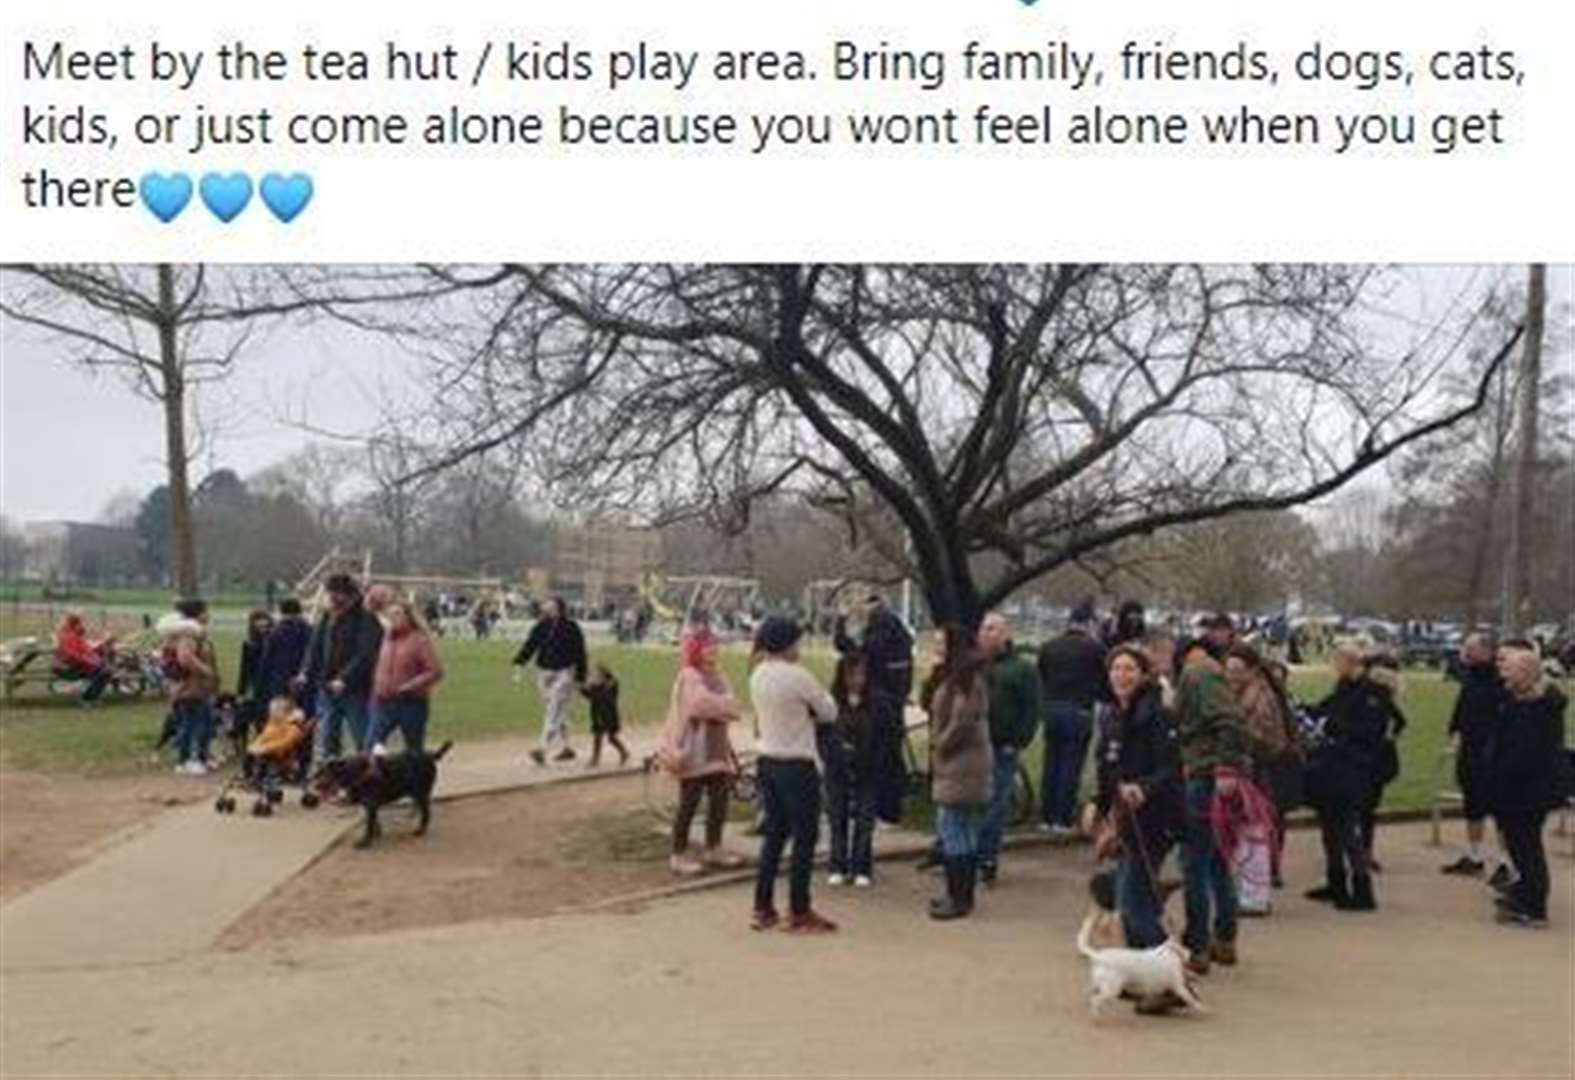 'Bring family, friends, dogs, cats, kids to park'